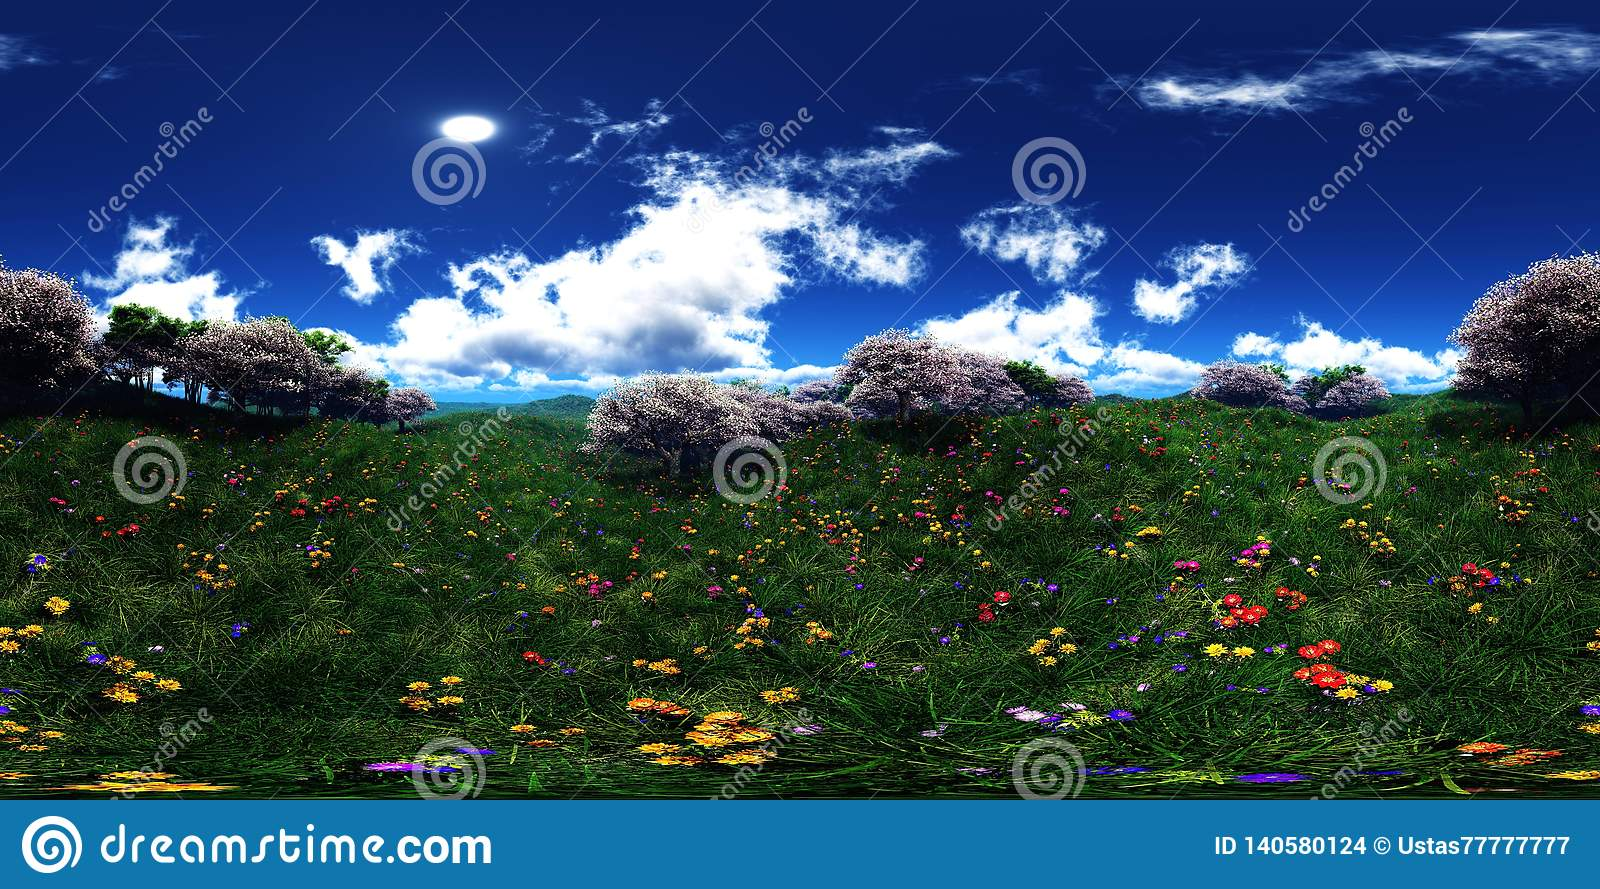 c8d8fb2fe5365 Green hills under the setting sun in the clouds, panorama of the hilly  landscape, beautiful sunset over the green hills flower hills, spring  landscape of ...